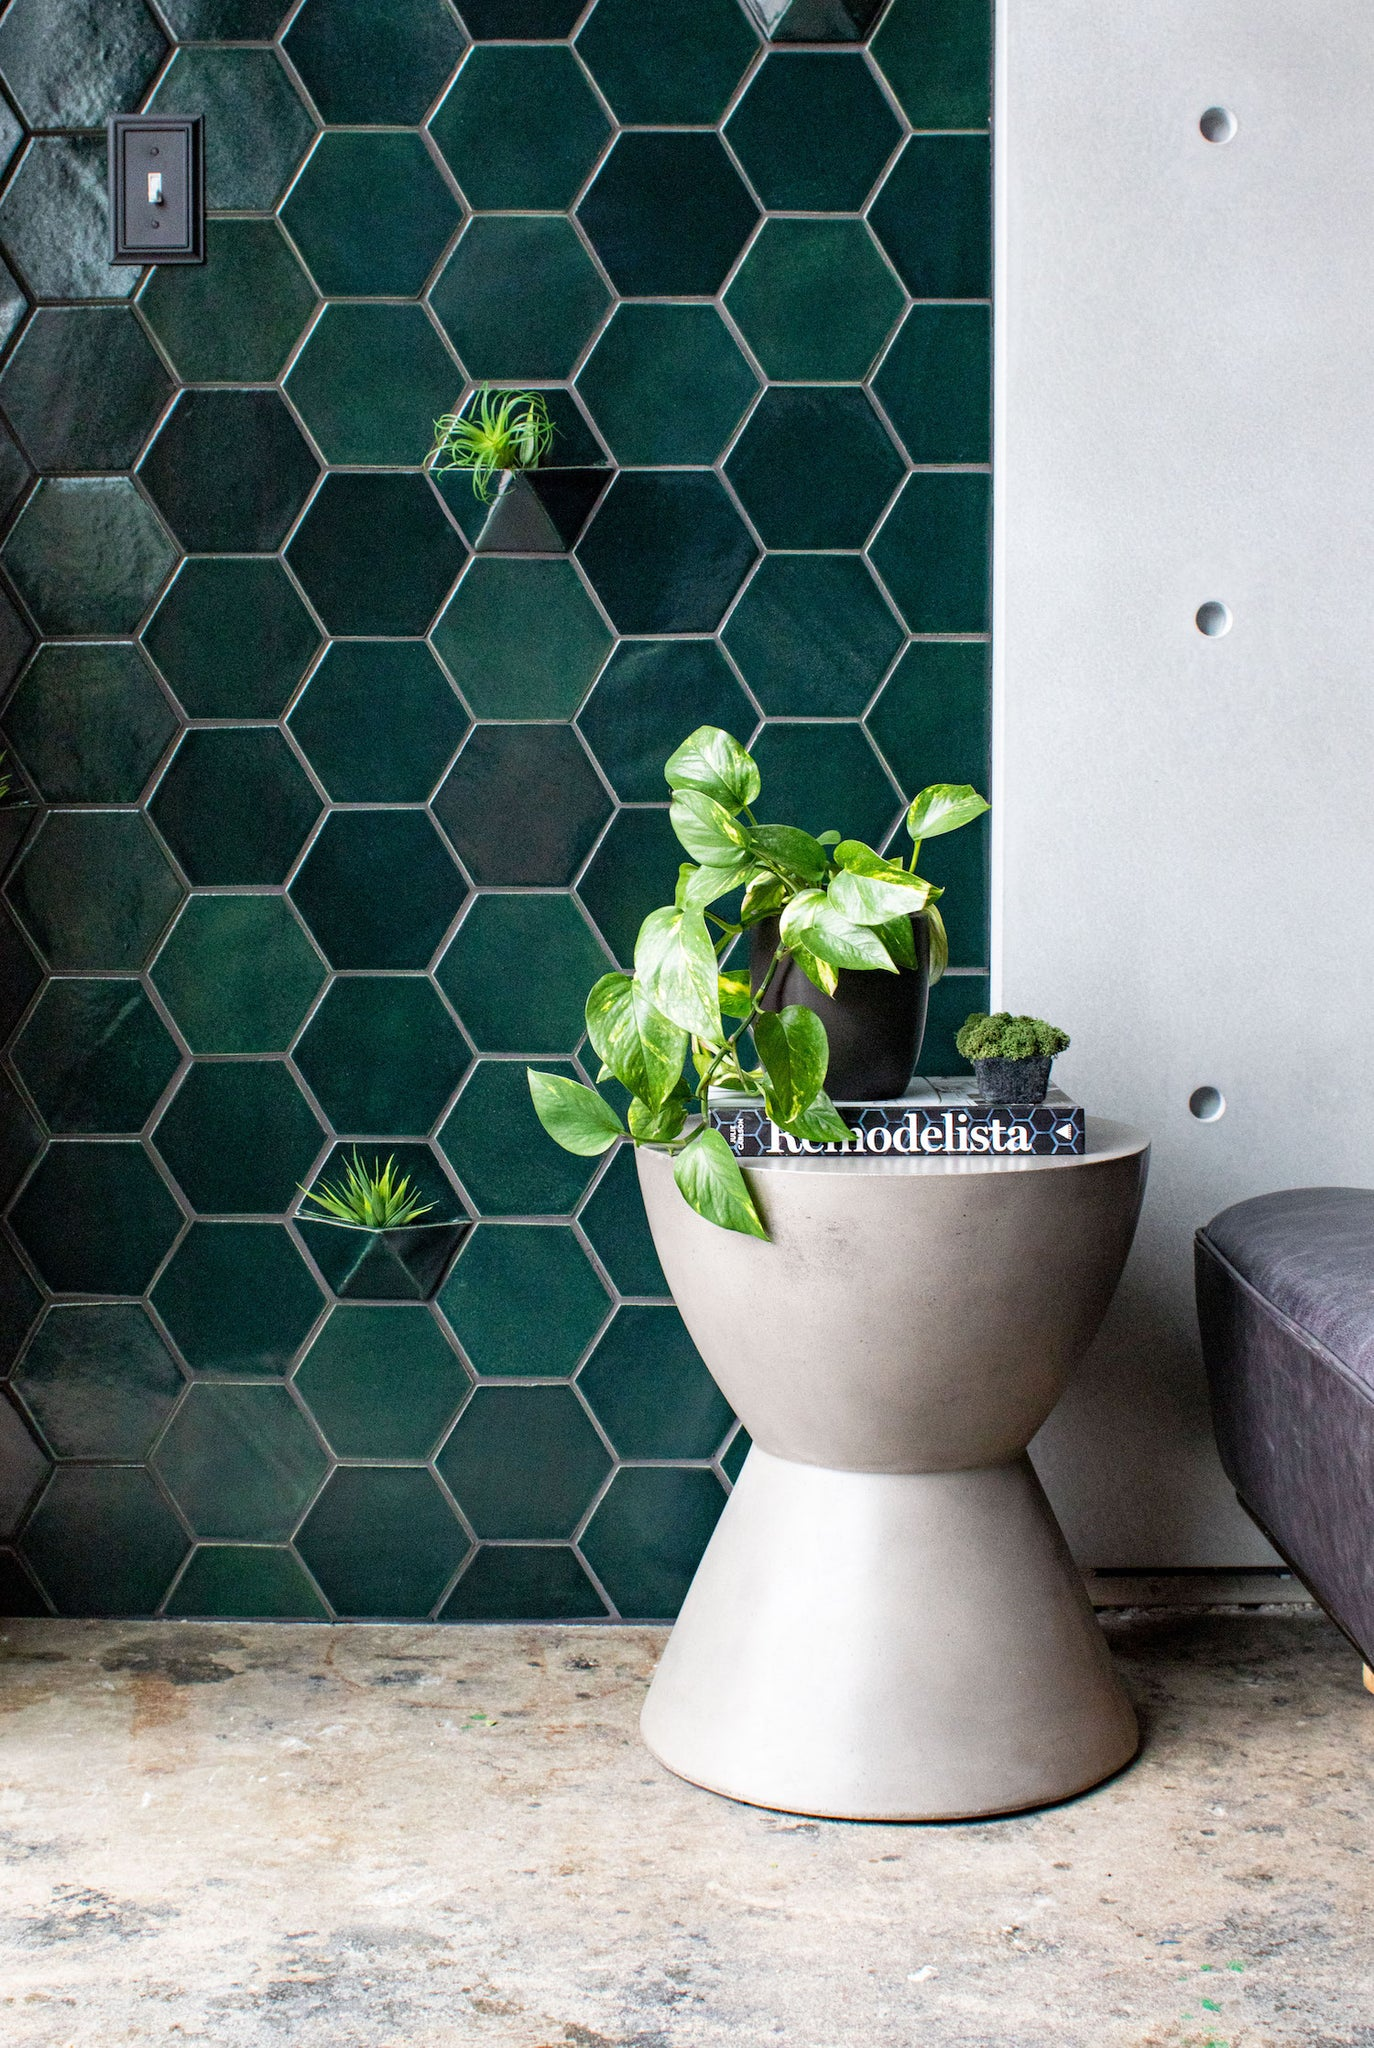 Tile and Concrete Combinations